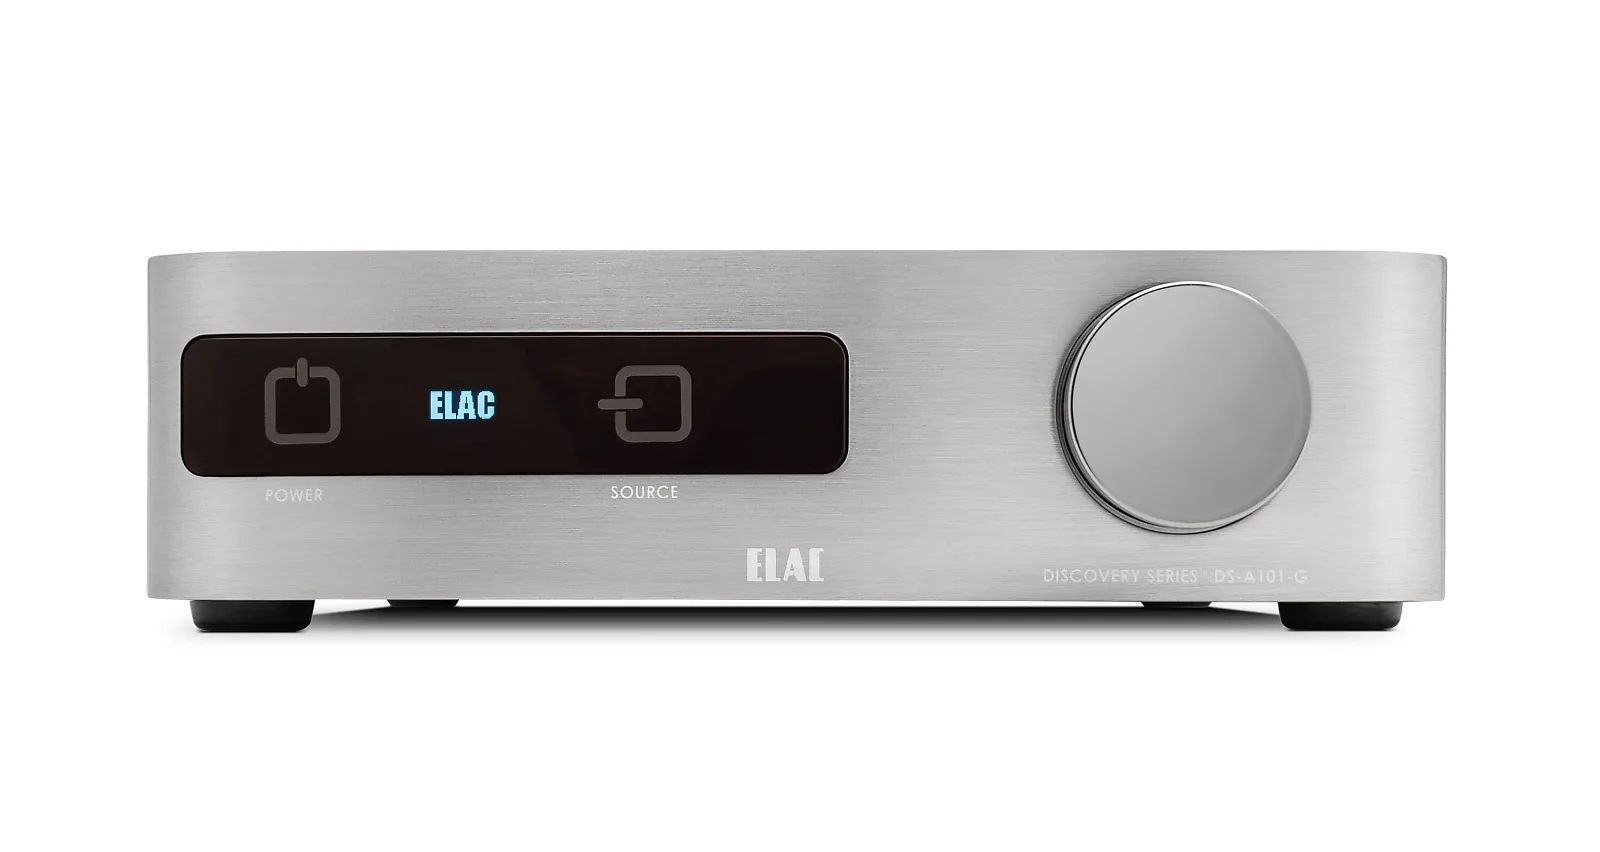 ELAC Discovery DS-A101-G